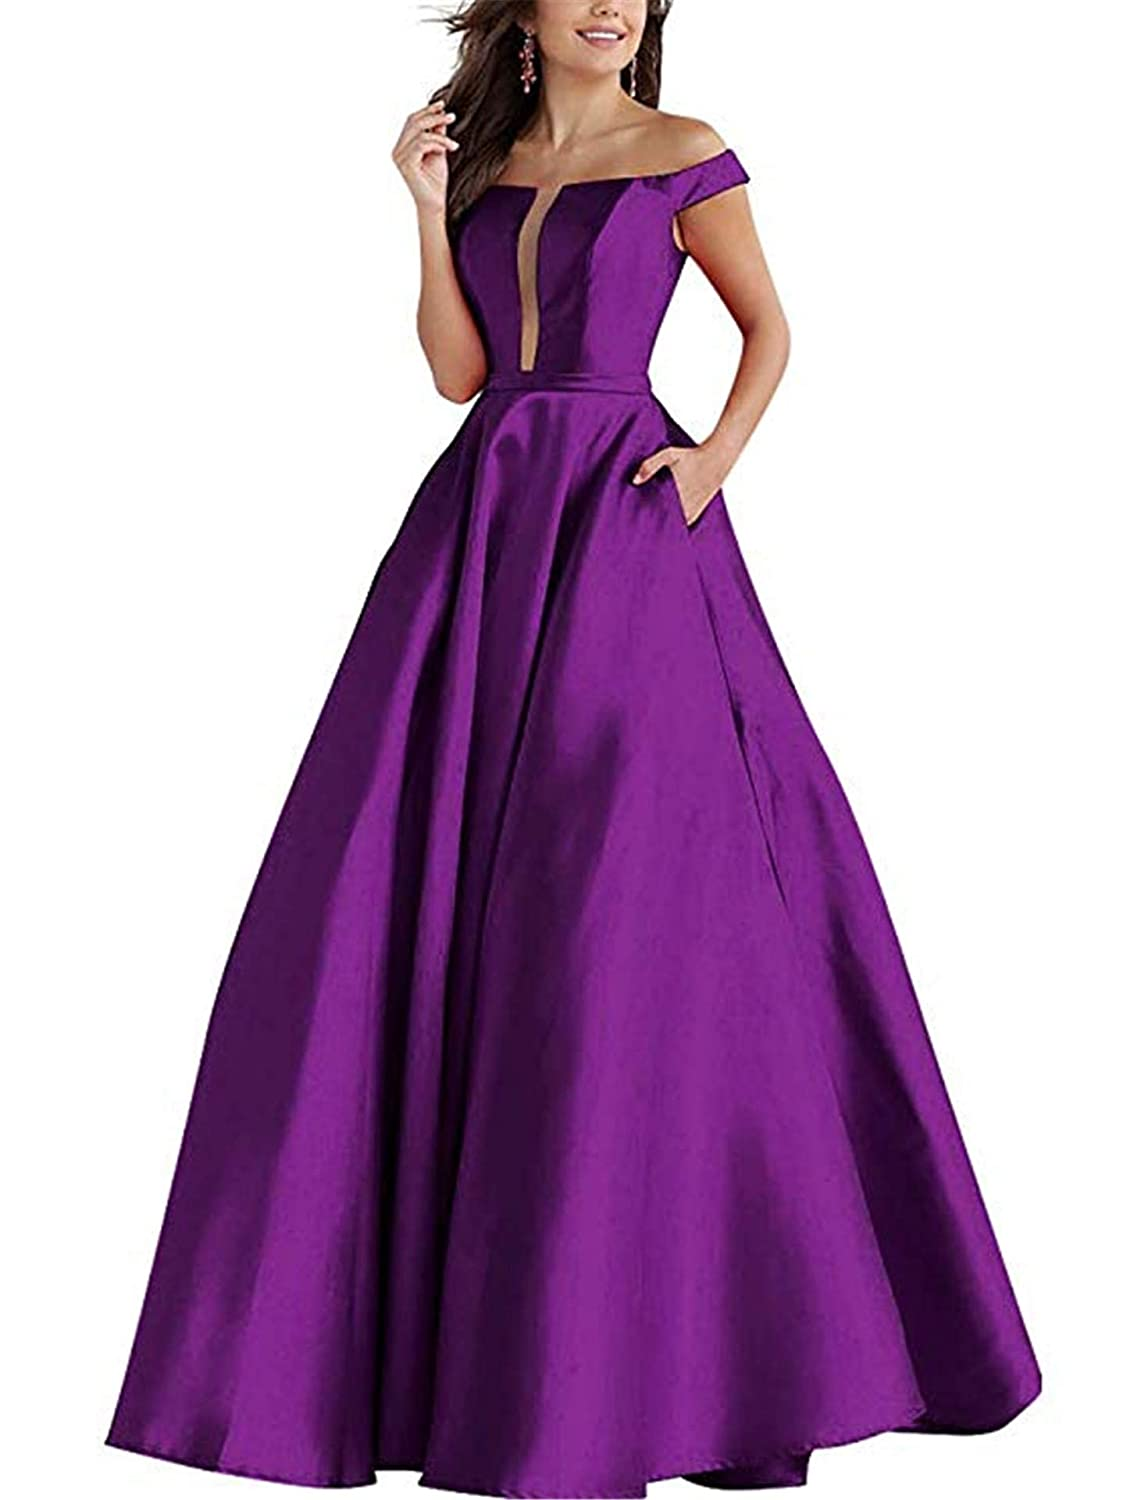 Purple QiJunGe Women's Off The Shoulder Satin Prom Dress A Line Evening Formal Gowns